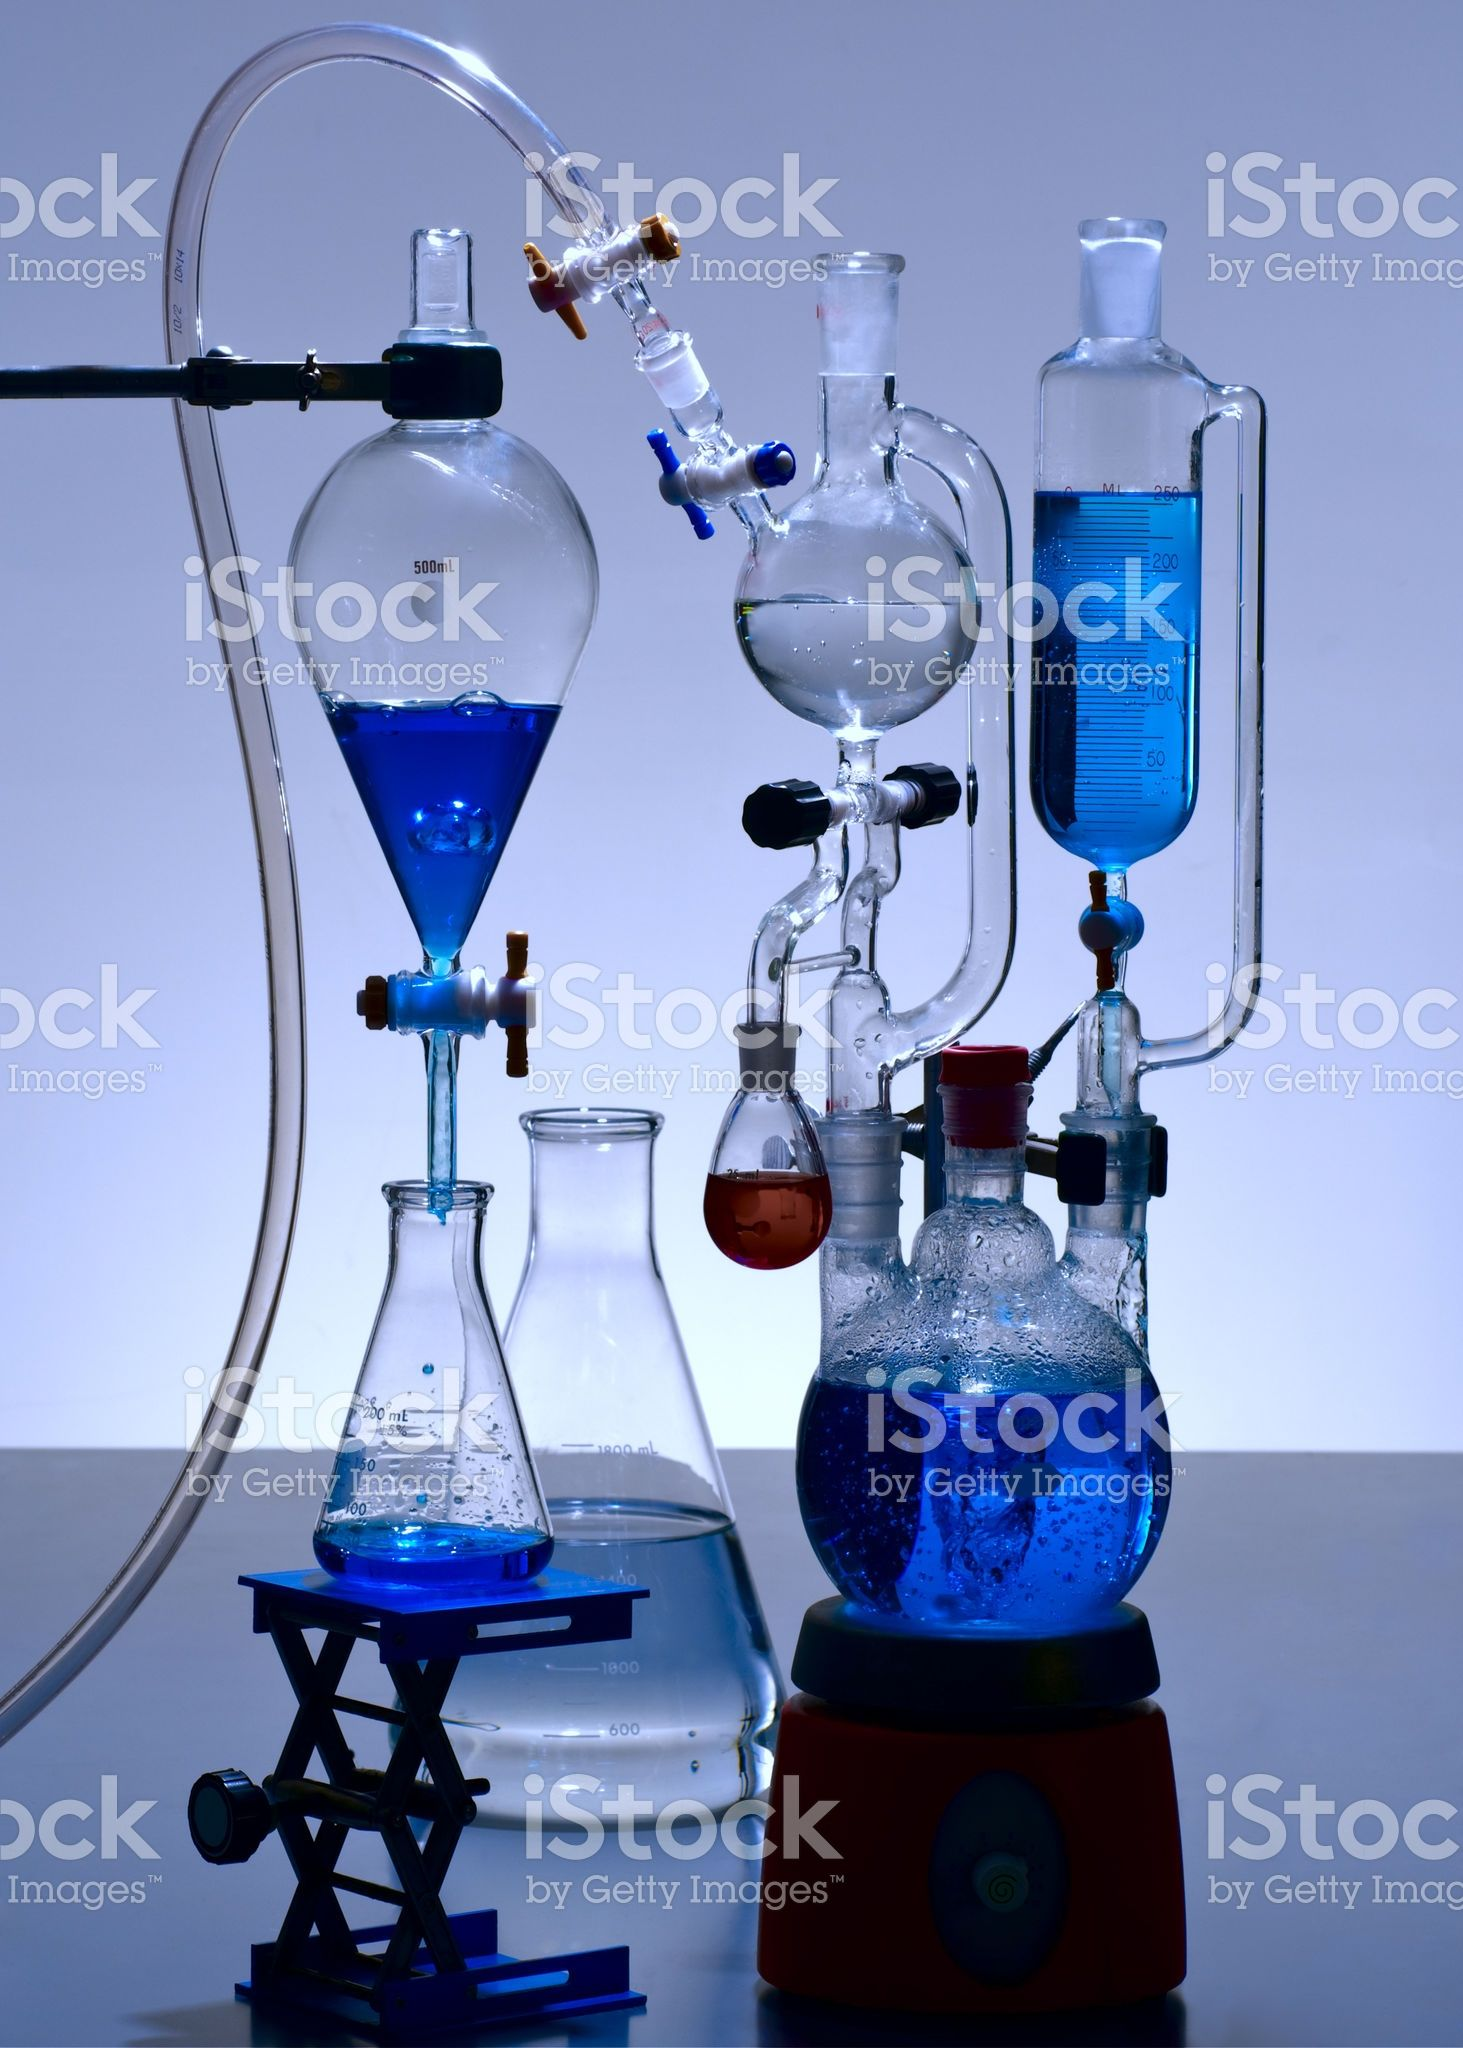 Chemical Laboratory Glassware With Blue Solutions Laboratory Design Chemistry Laboratory Science